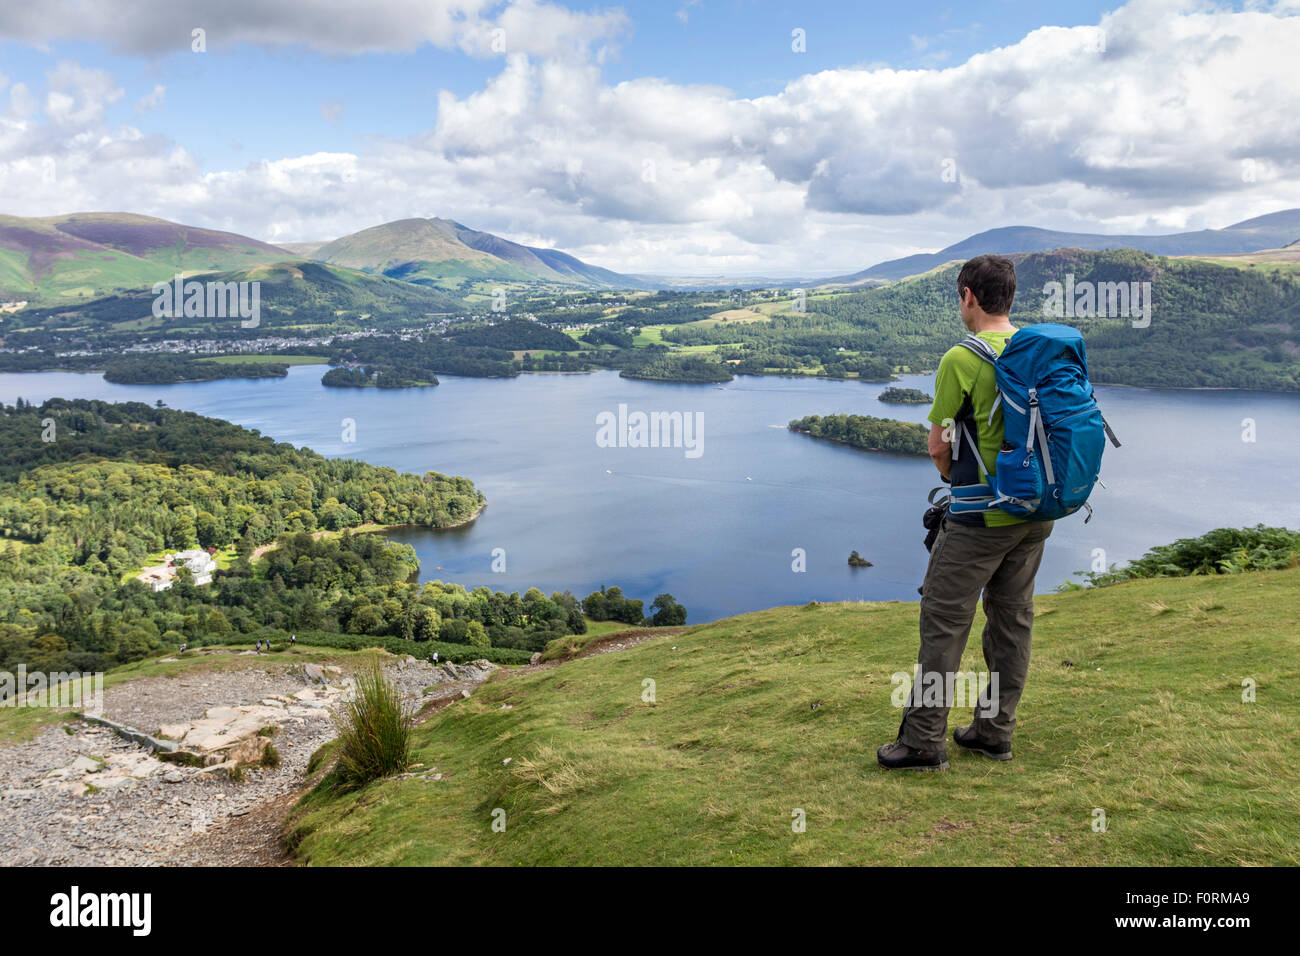 Walker Enjoying the View Across Derwent Water Towards Blencathra from the Lowers Slopes of Catbells, Lake District - Stock Image